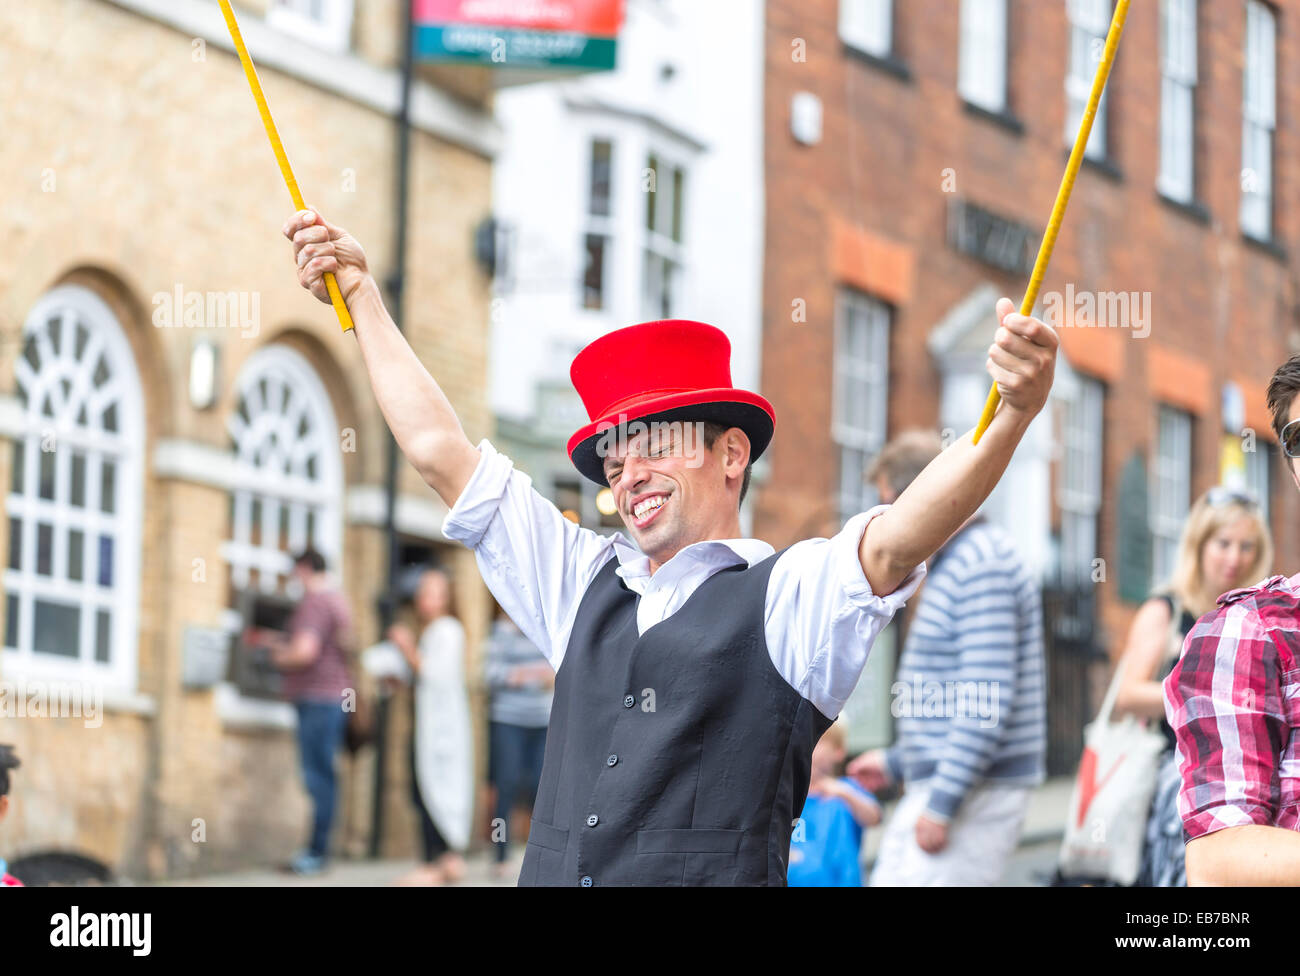 Man playing a soap bubble on high street at Arundel Festival 2014 Stock Photo